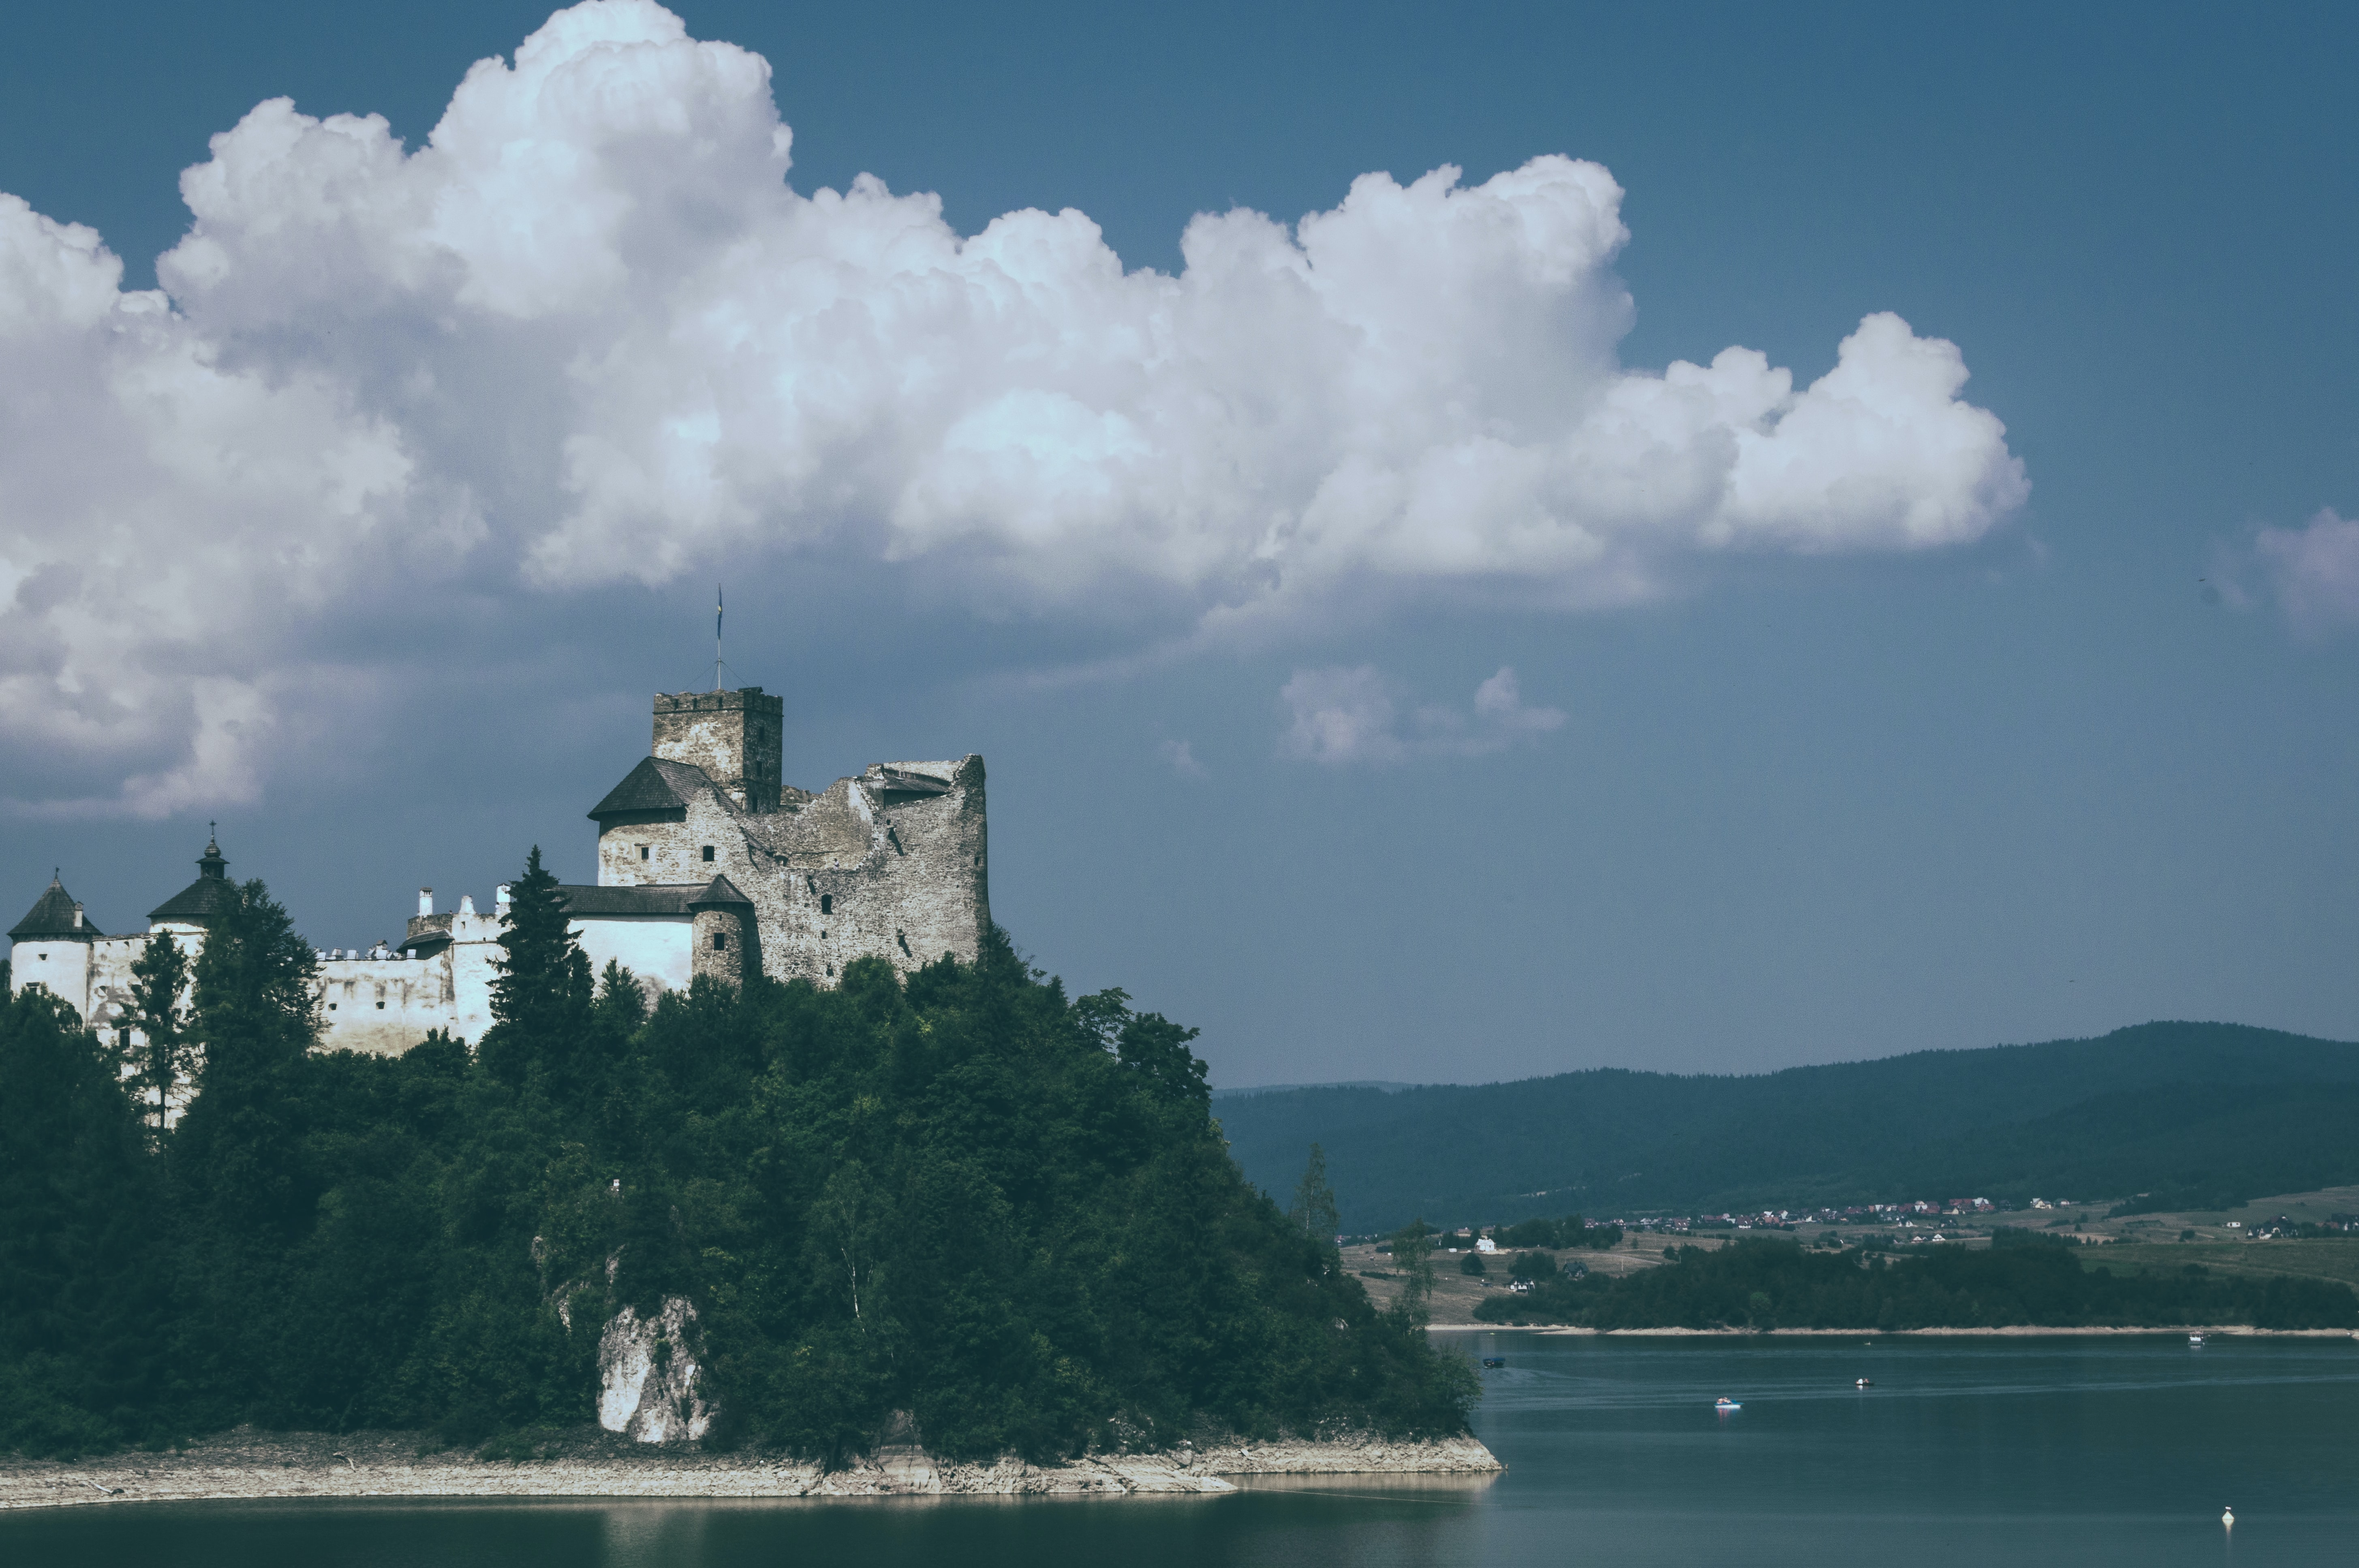 castle on cliff under white clouds and blue sky